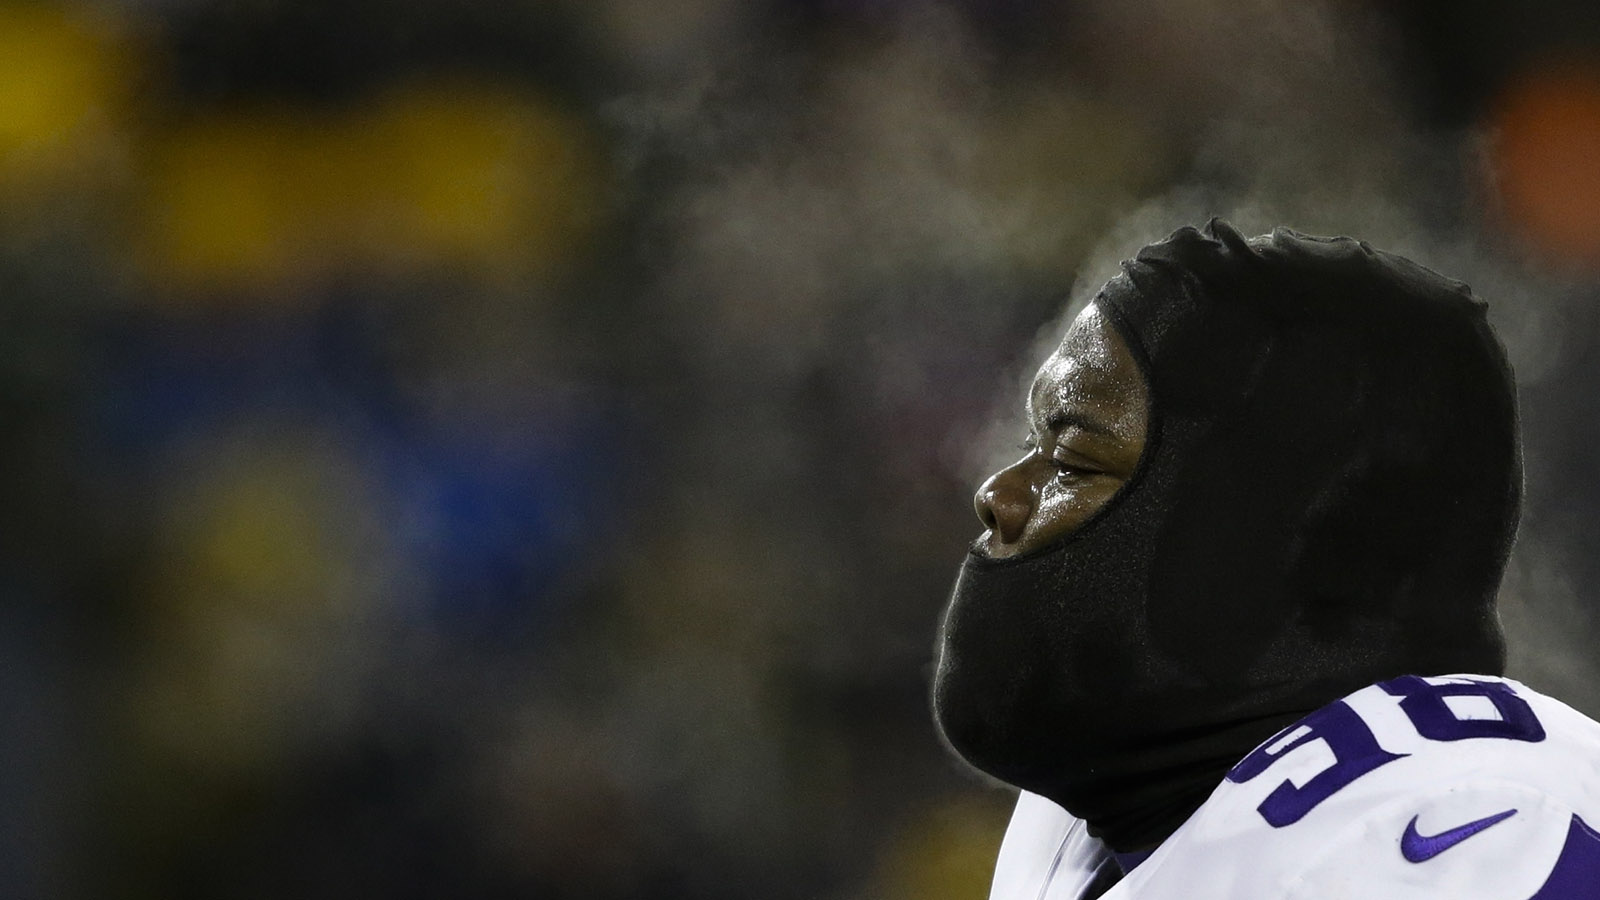 Steam rises from the head of Minnesota Vikings' Linval Joseph during the first half of an NFL football game against the Green Bay Packers Saturday, Dec. 23, 2017, in Green Bay, Wis. (AP Photo/Jeffrey Phelps)